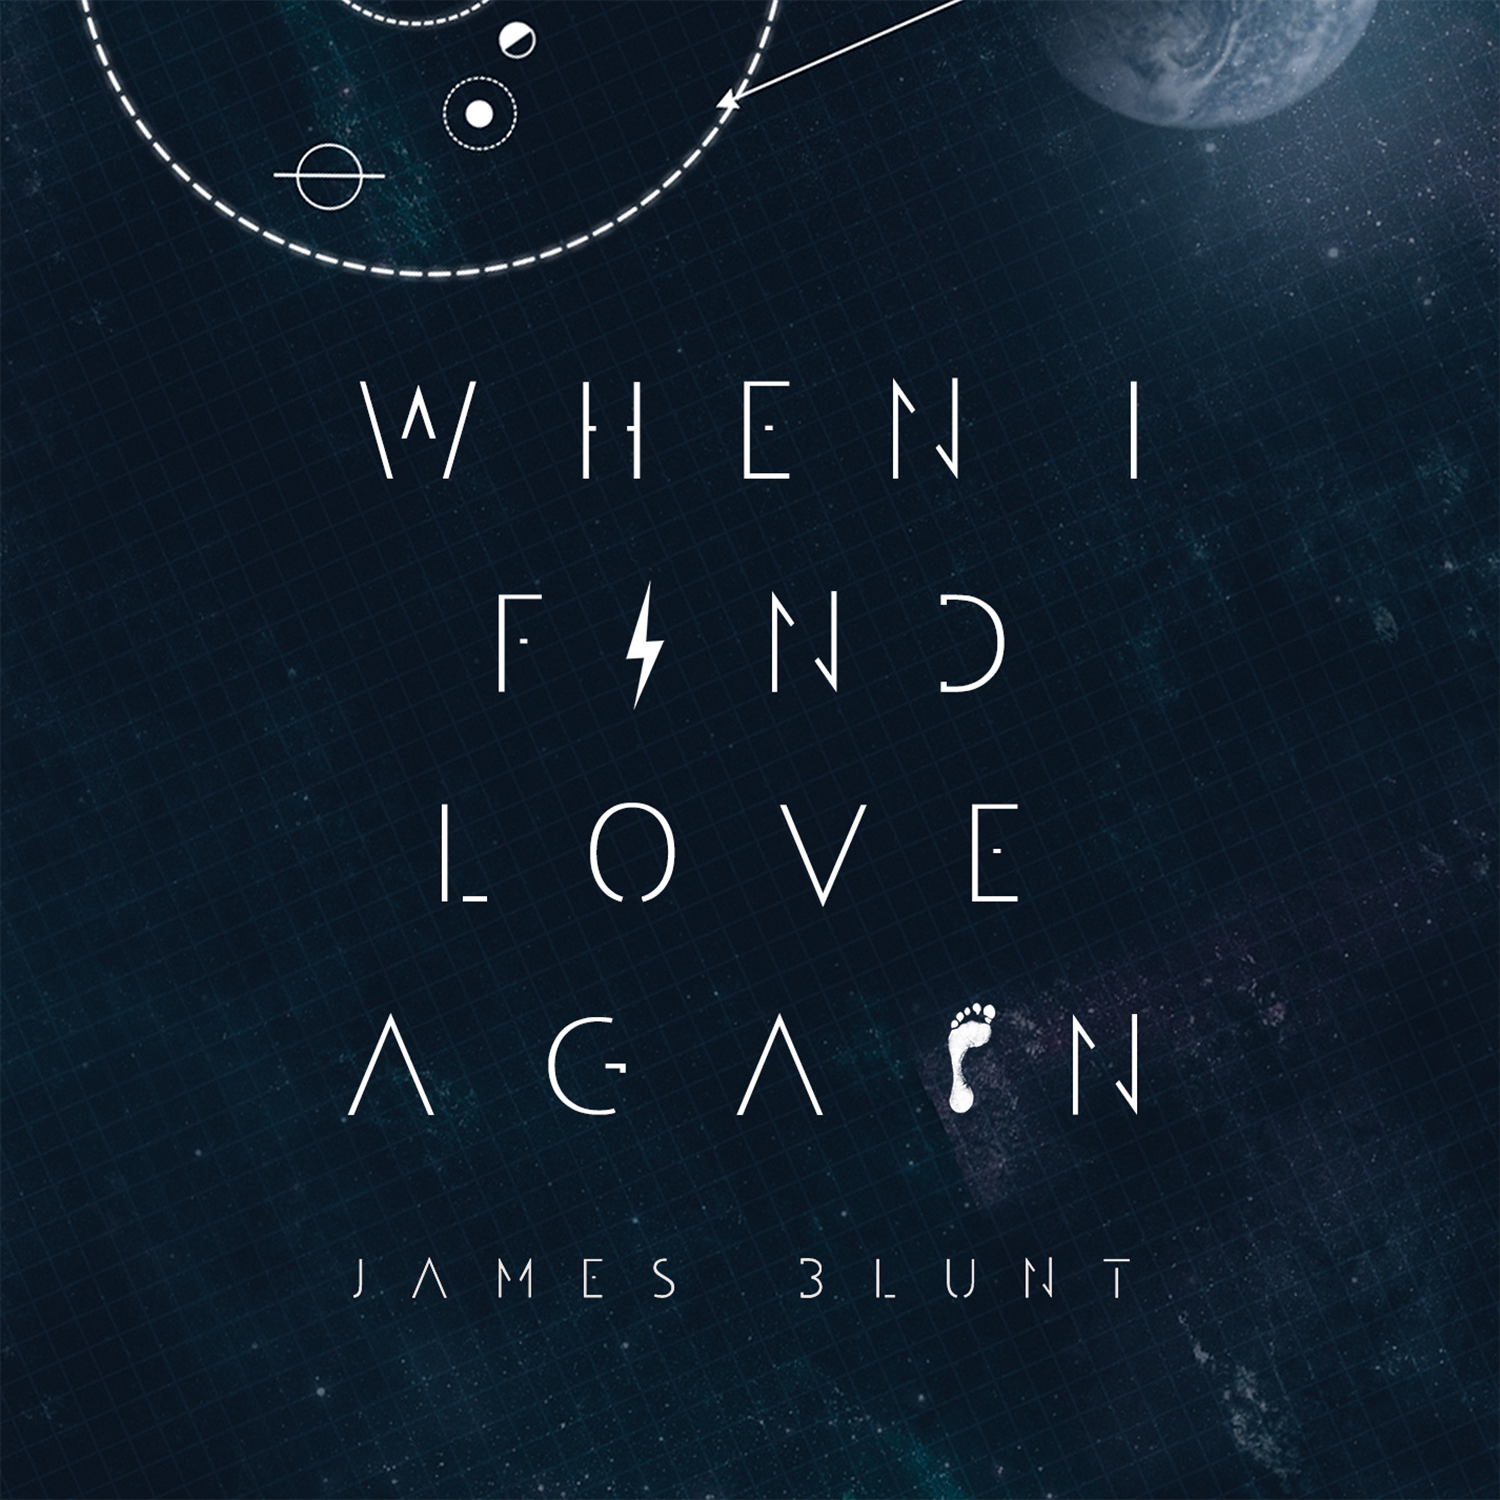 james blunt when i find love again Download james blunt - when i find love again mp3 play james blunt mp3 songs for free find your favorite songs in our multimillion database of quality mp3s 2498274.